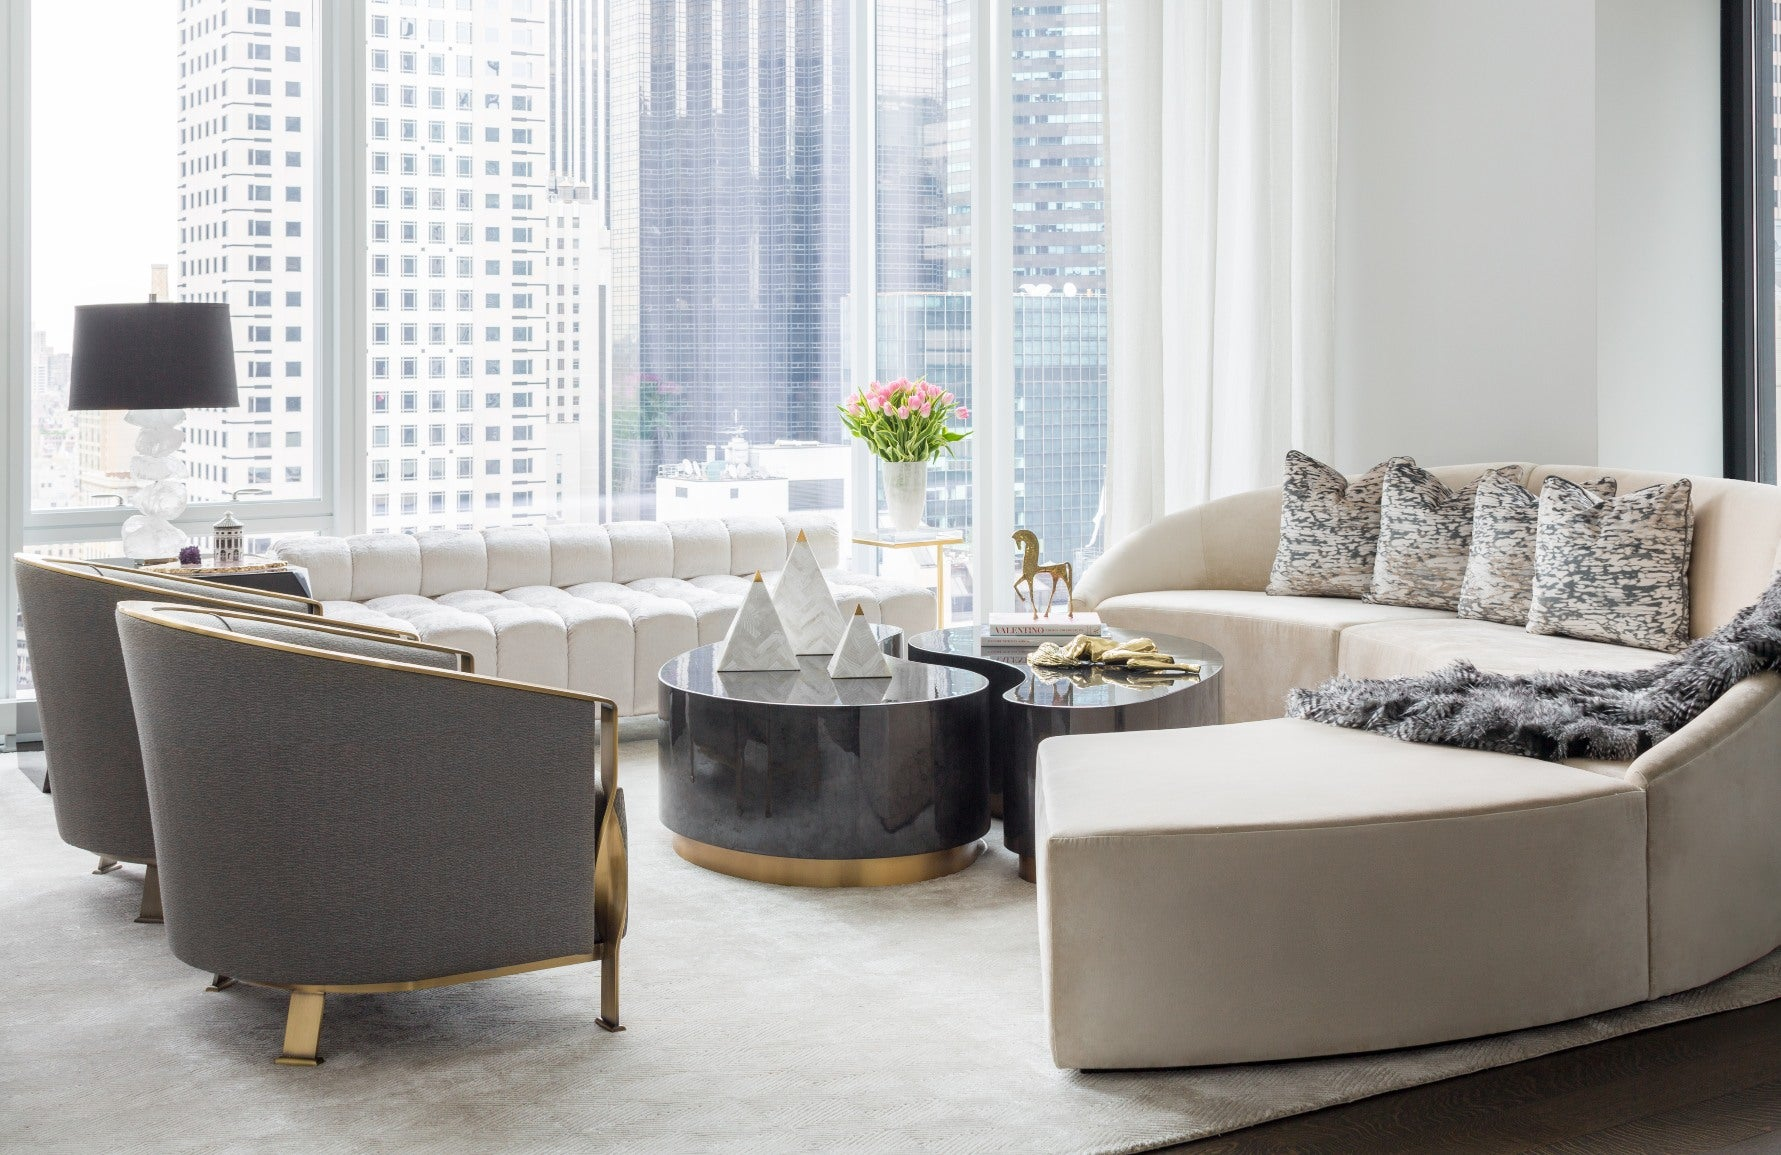 Neutral Living Rooms | Carlyle Designs New York Living Room |Read more and shop the look at LuxDeco.com